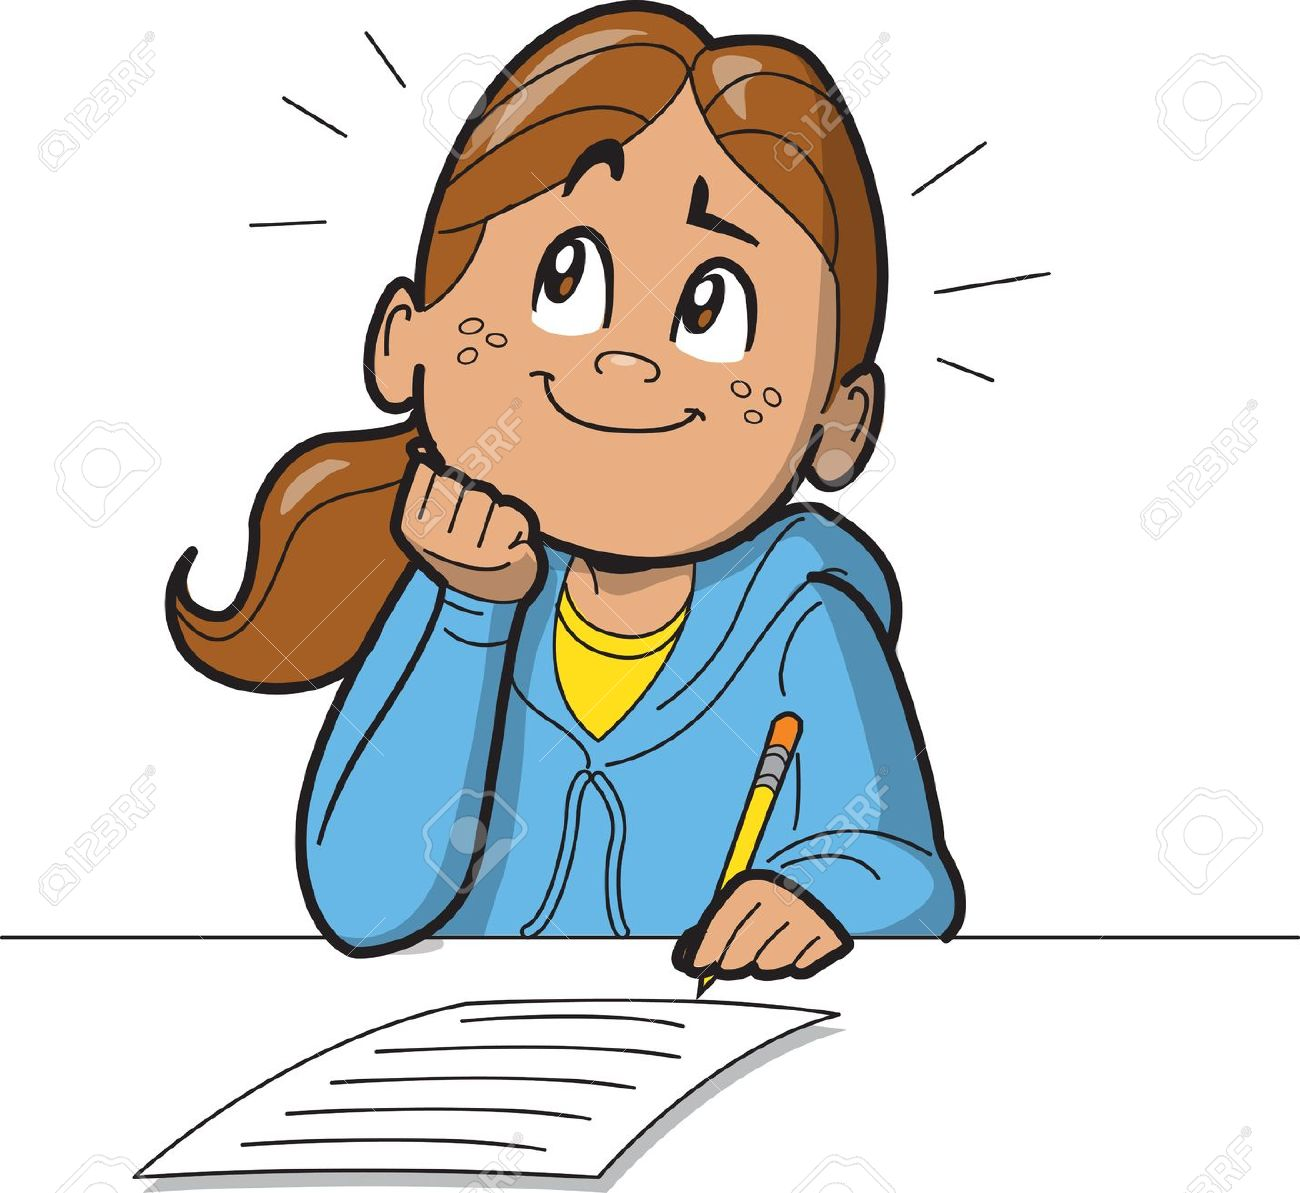 clip art transparent Boy writing girl child. Write a letter clipart